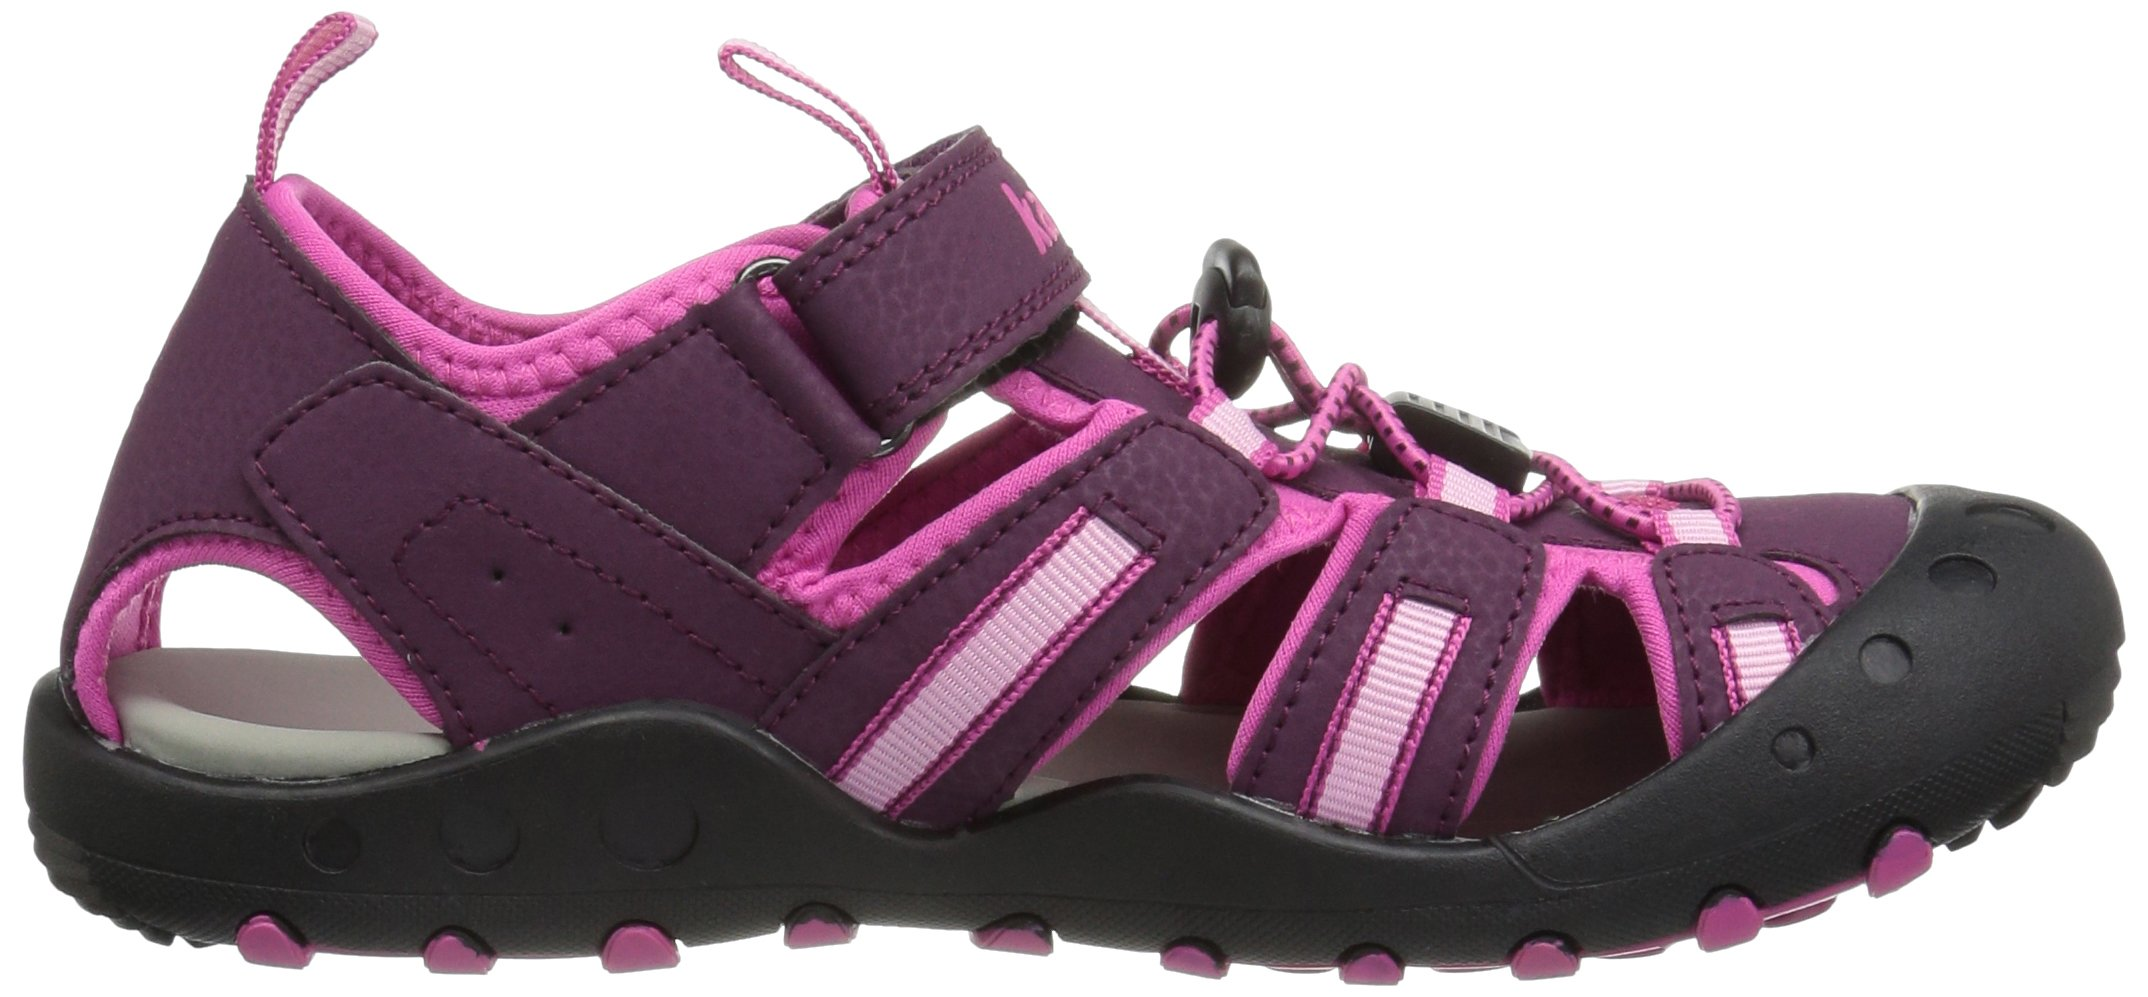 Kamik Toddler Crab Sandals Plum 4 by Kamik (Image #6)